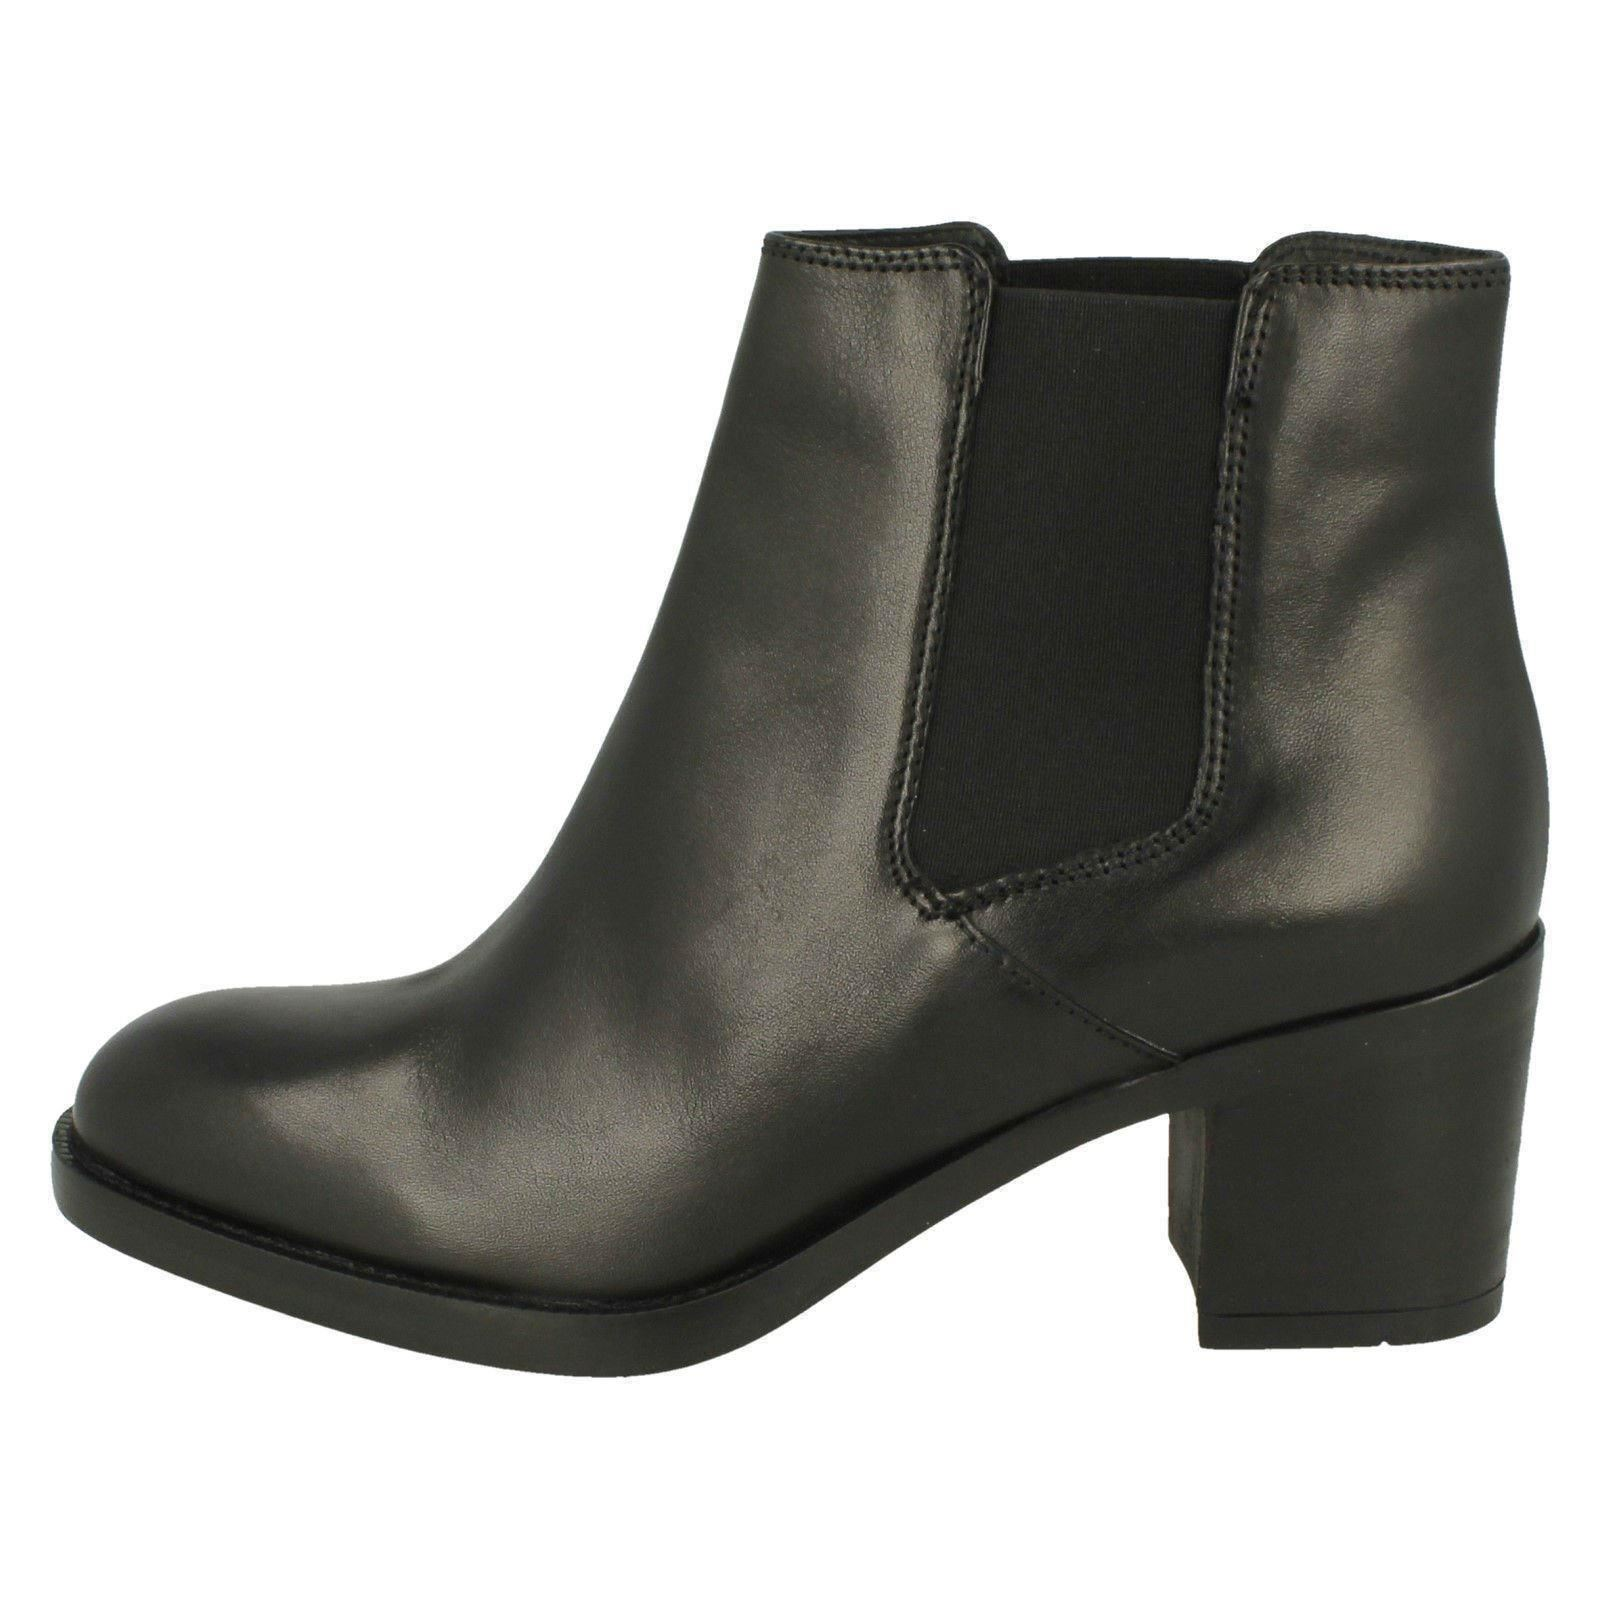 Ladies Clarks Ankle Boots Boots Boots 'Mascarpone Bay' 64ad24